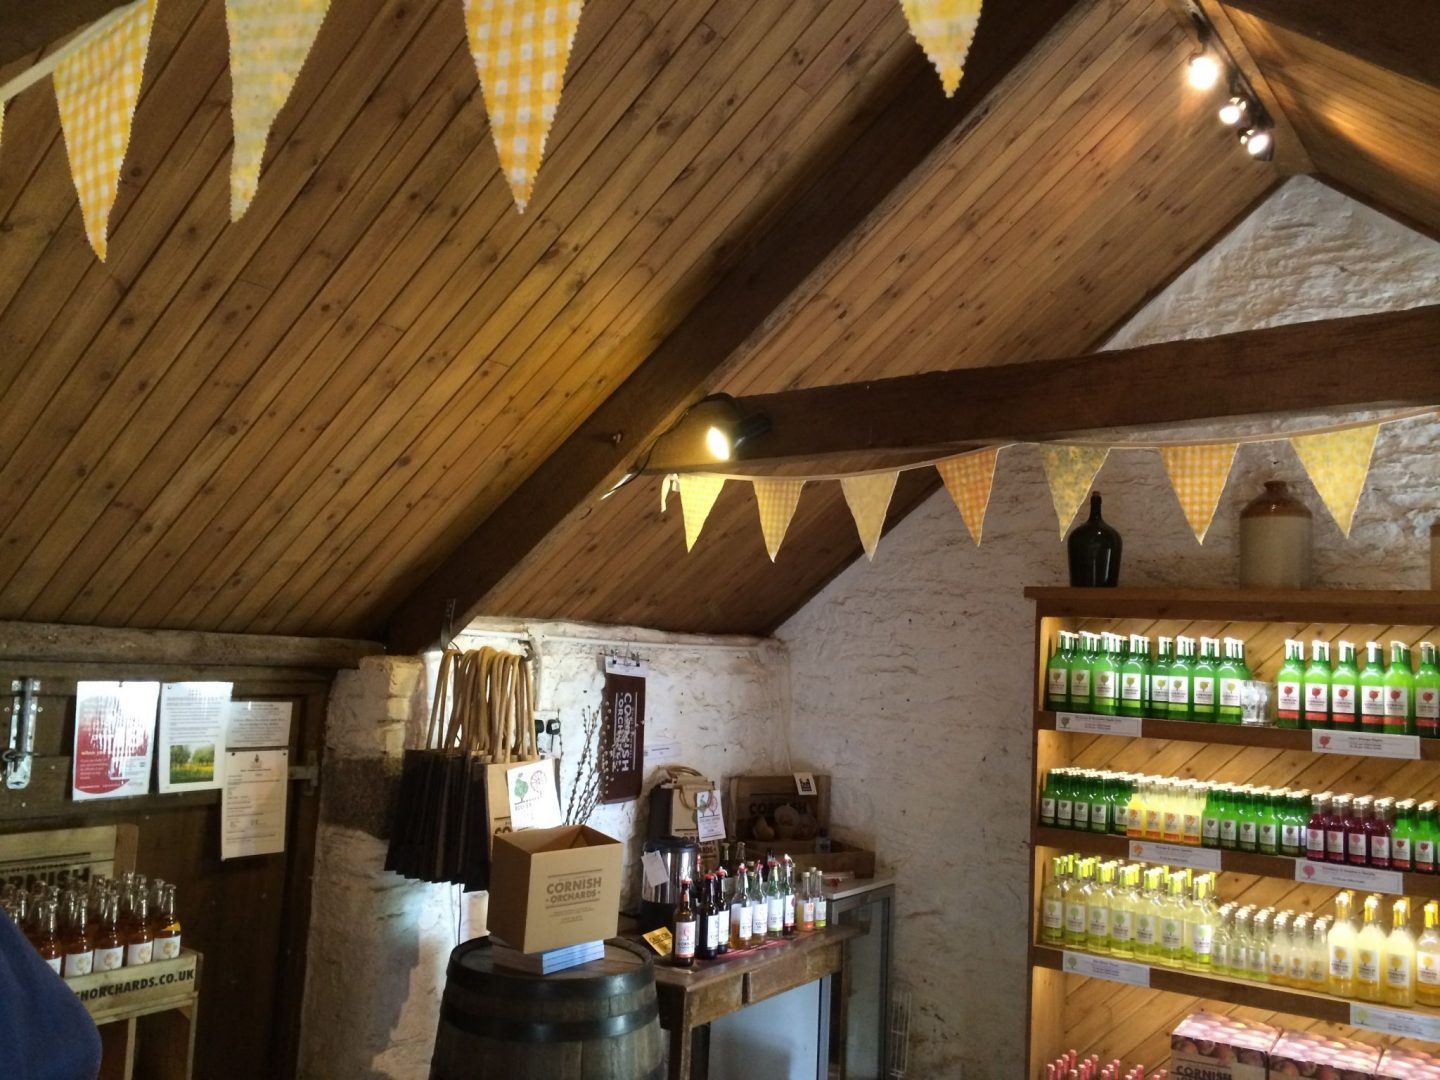 Bunting and decoration at Cornish Orchards